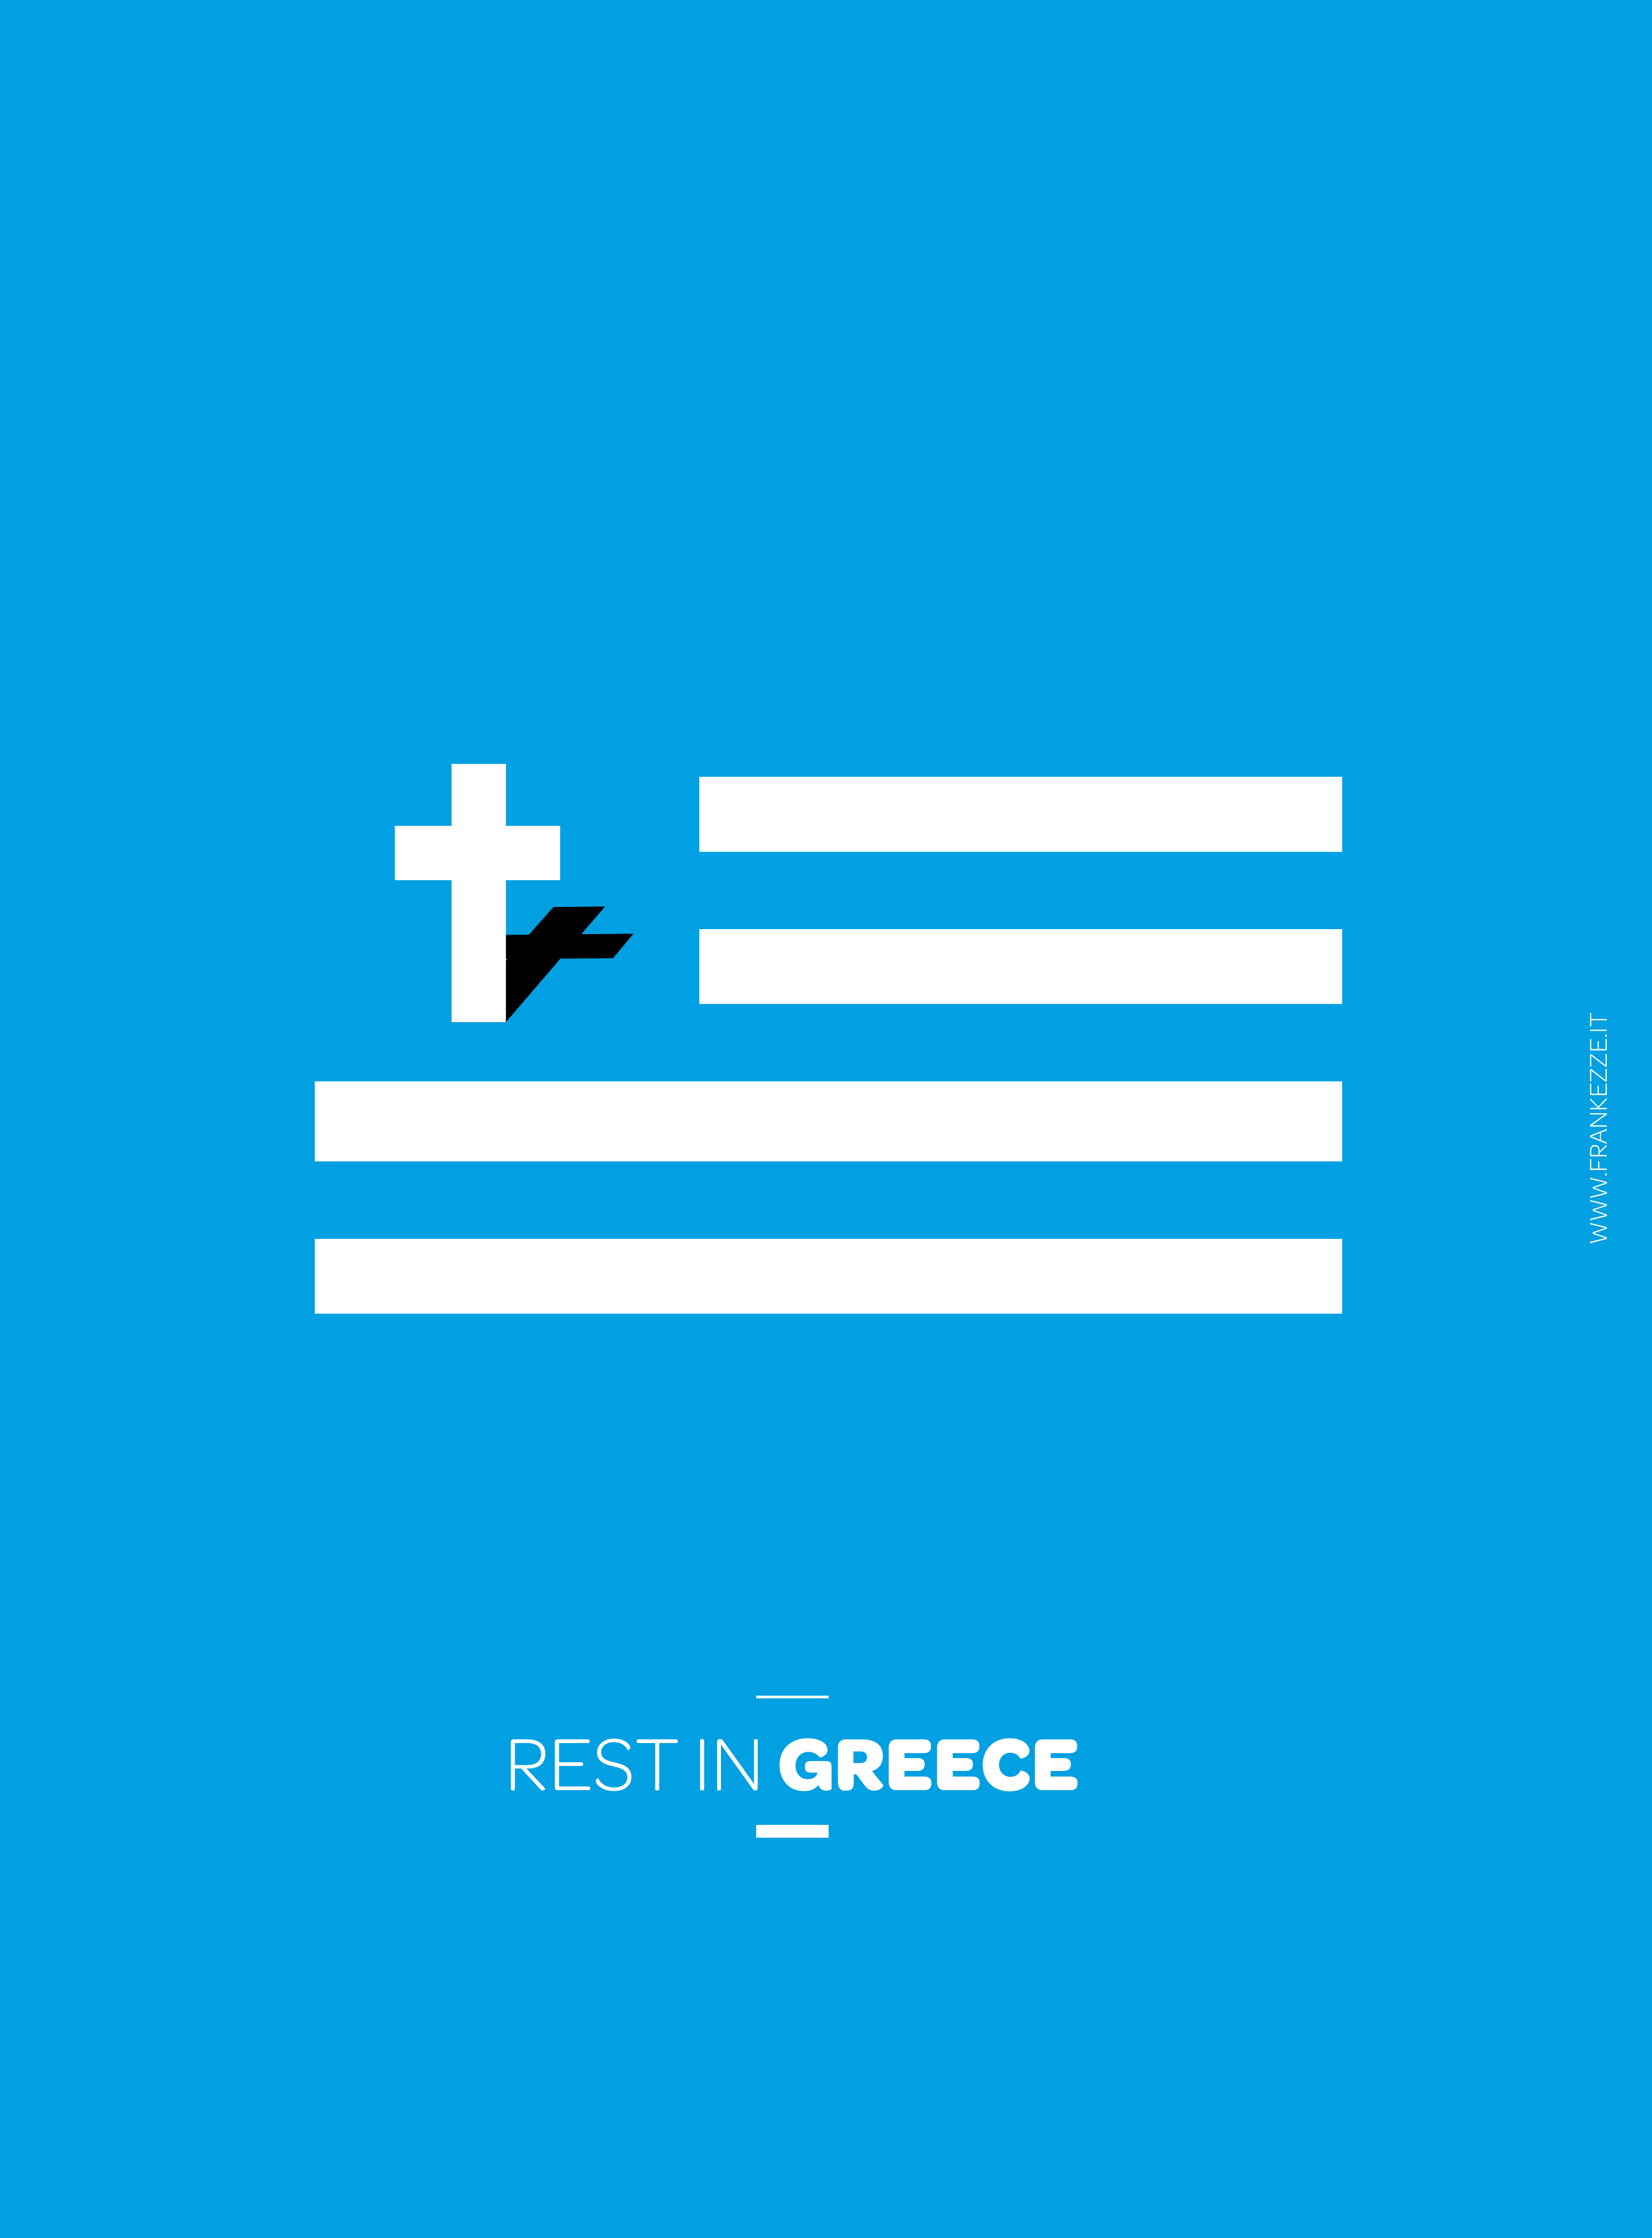 Rest in Greece